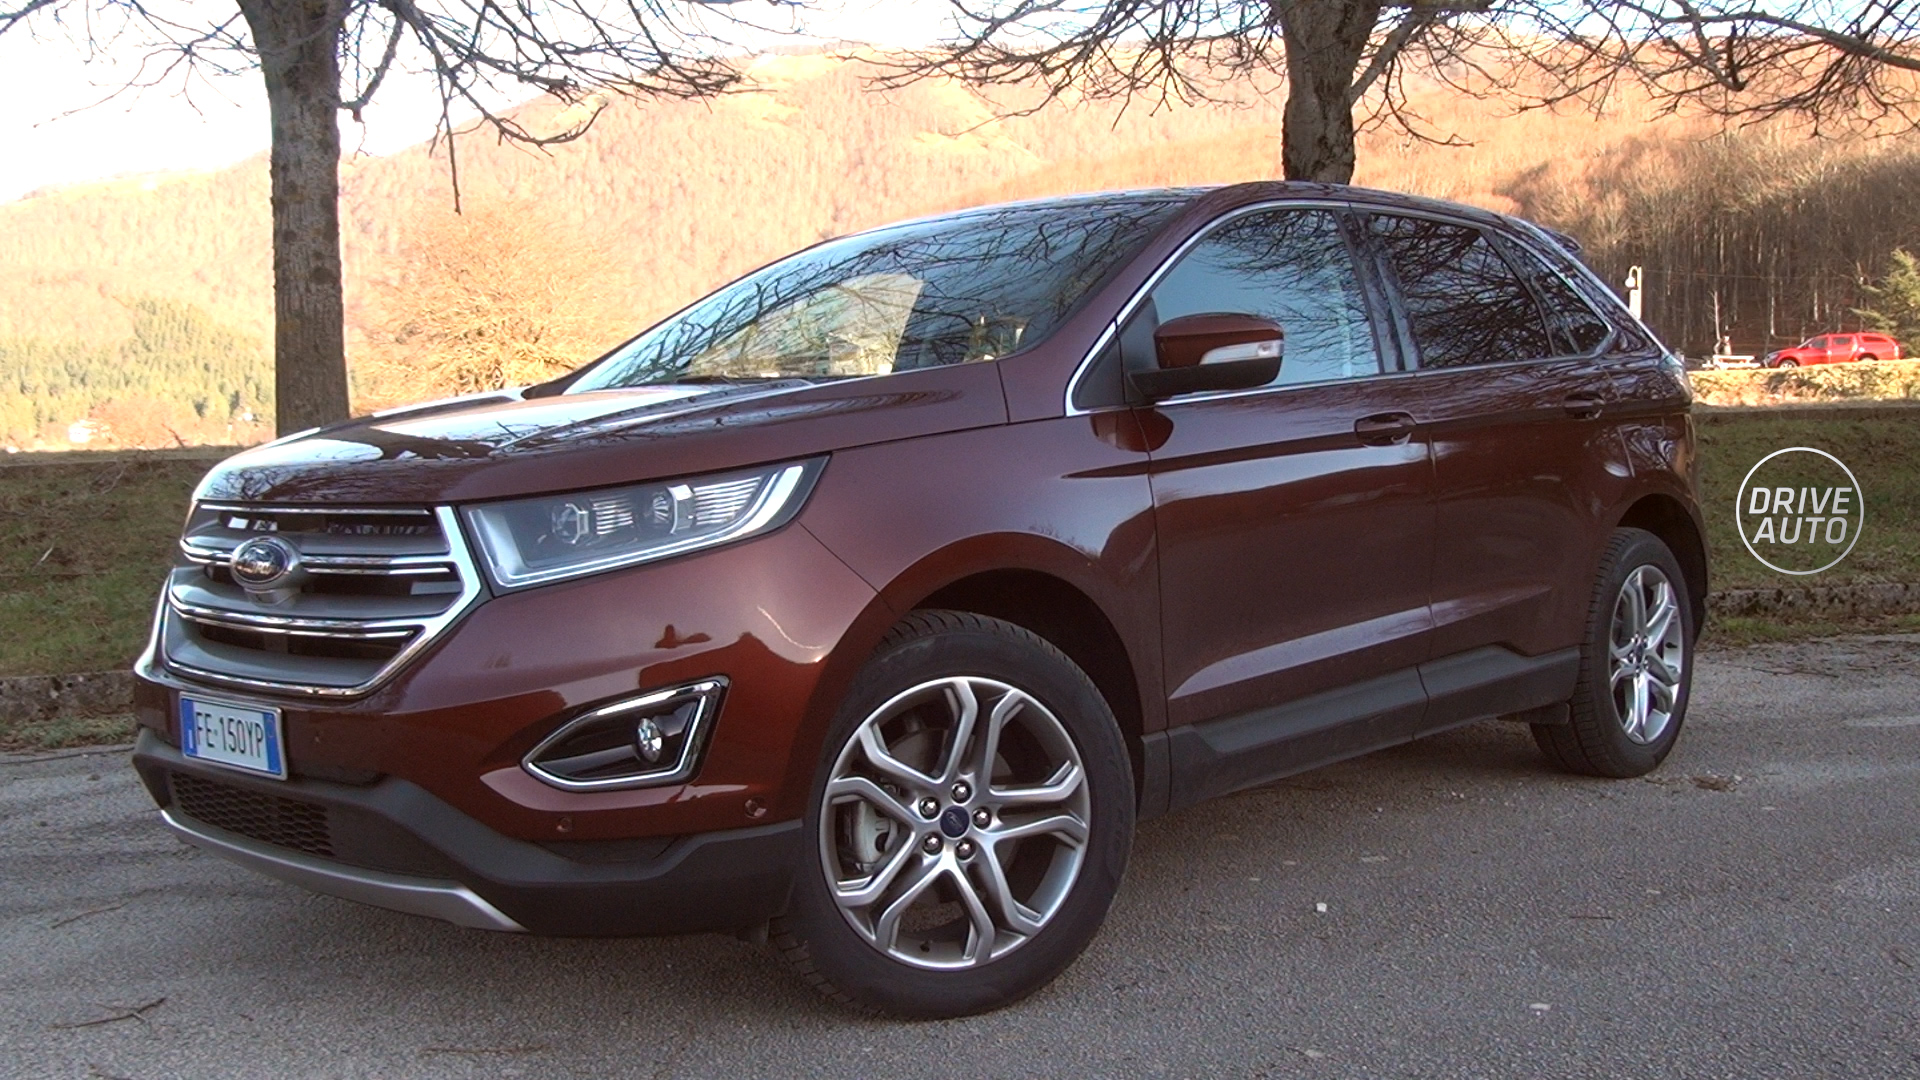 Test: Ford Edge 2.0 TDCI Powershift Titanium